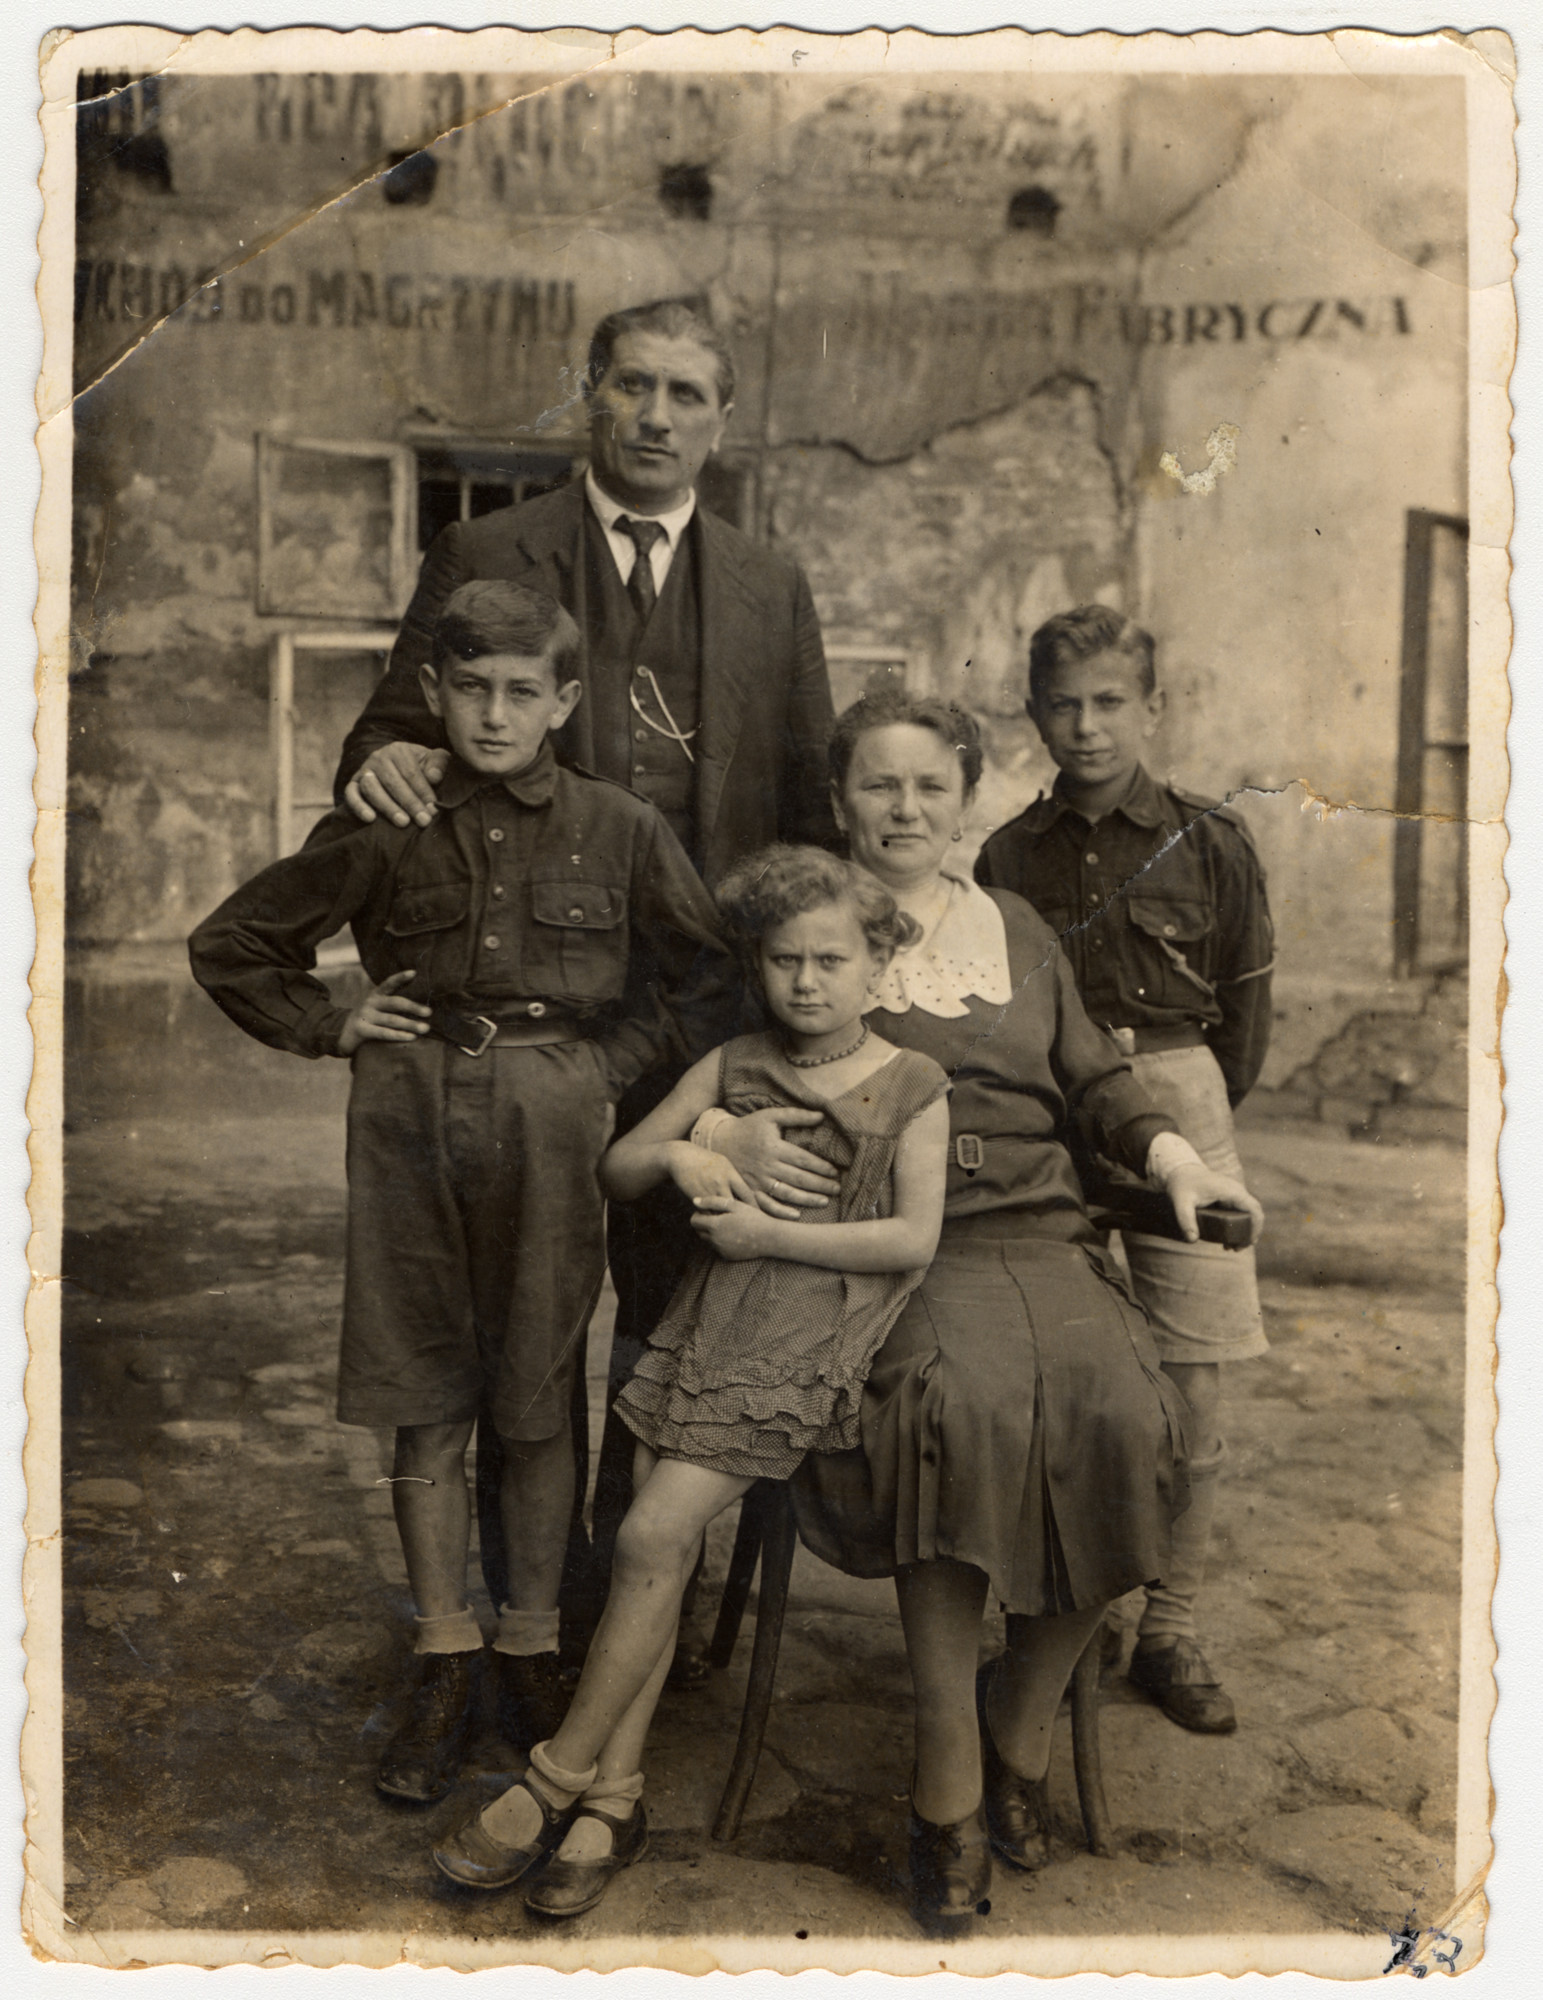 Prewar portrait of a Jewish family in Lvov.  Pictured are Samuel and Adela Shiber with their three children: Salomon, Matylda and Emanuel (on the right).  The building in the back may be Samuel Schiber's textile workshop.